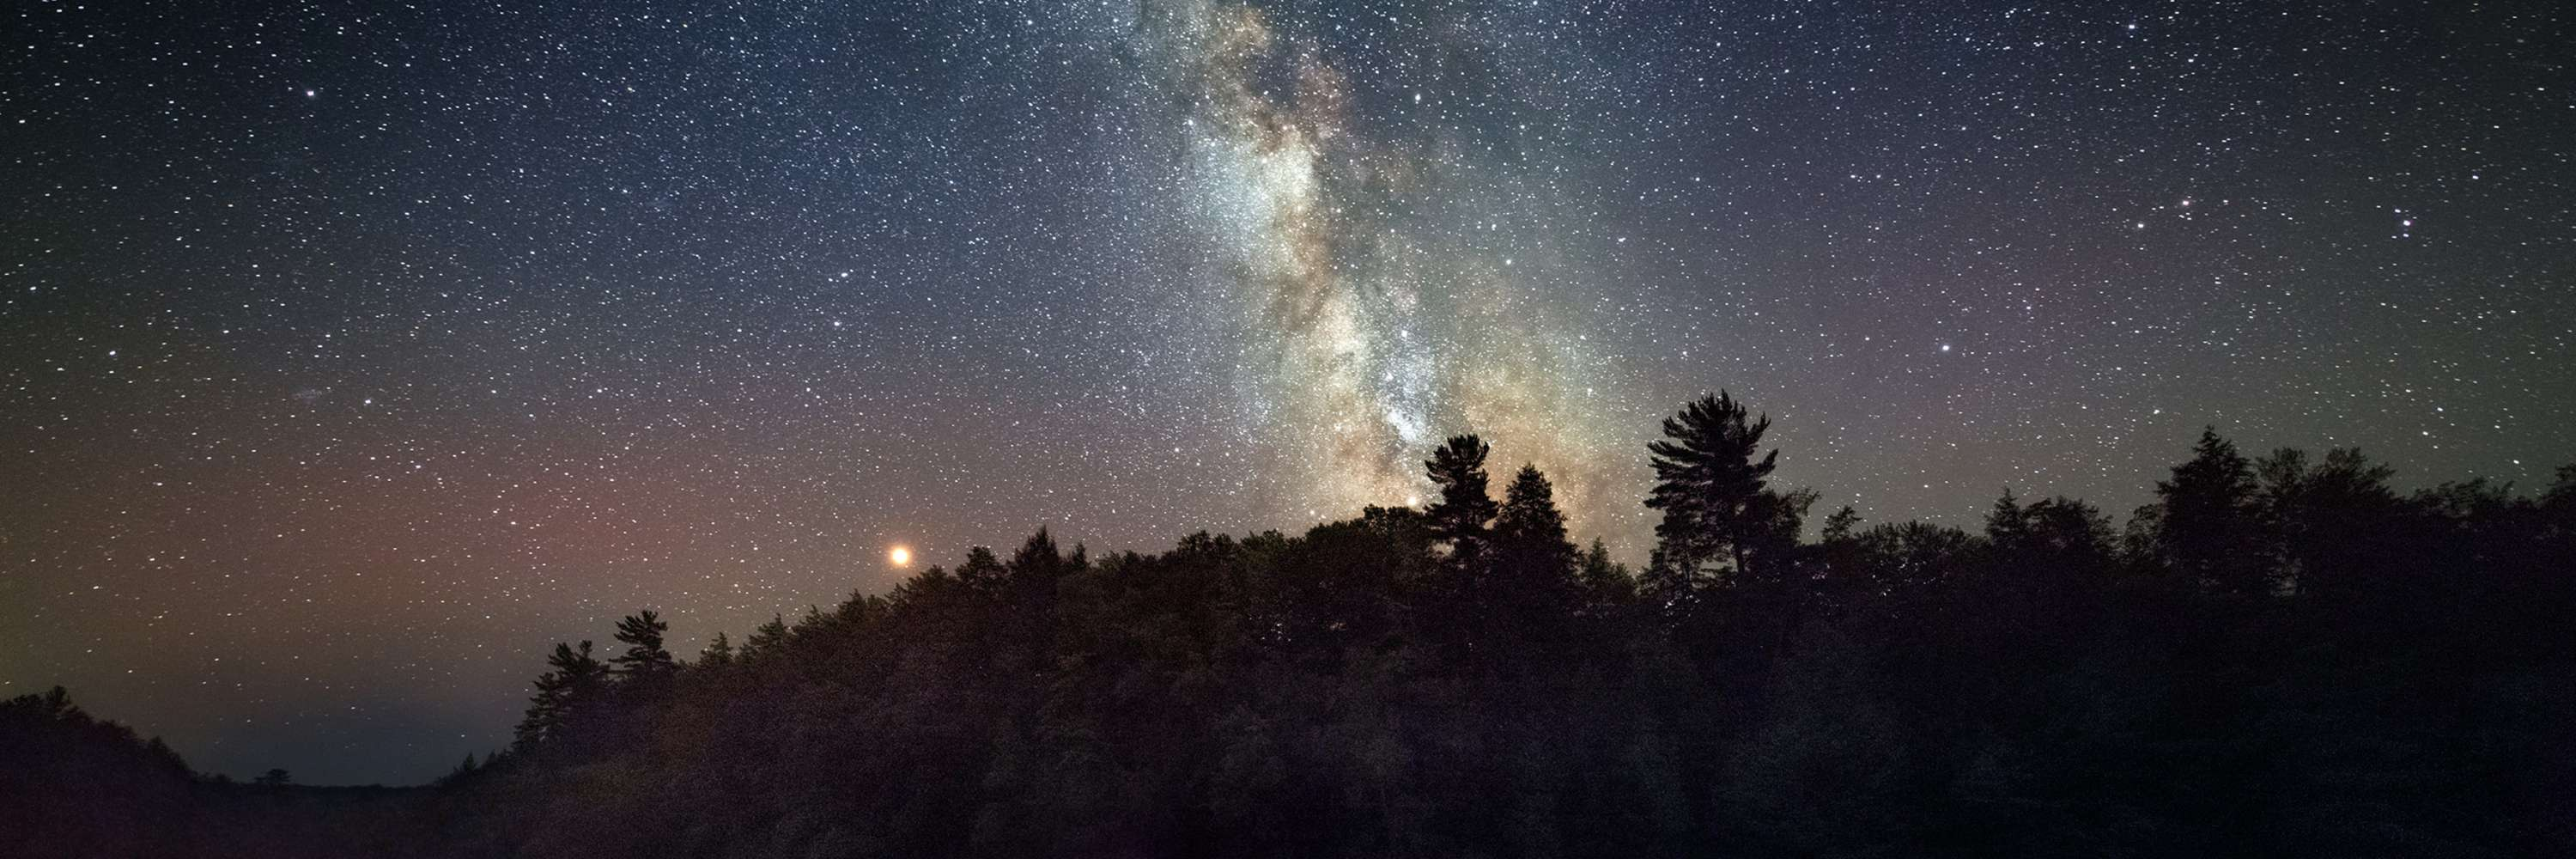 Milky Way at night over trees in Michigan